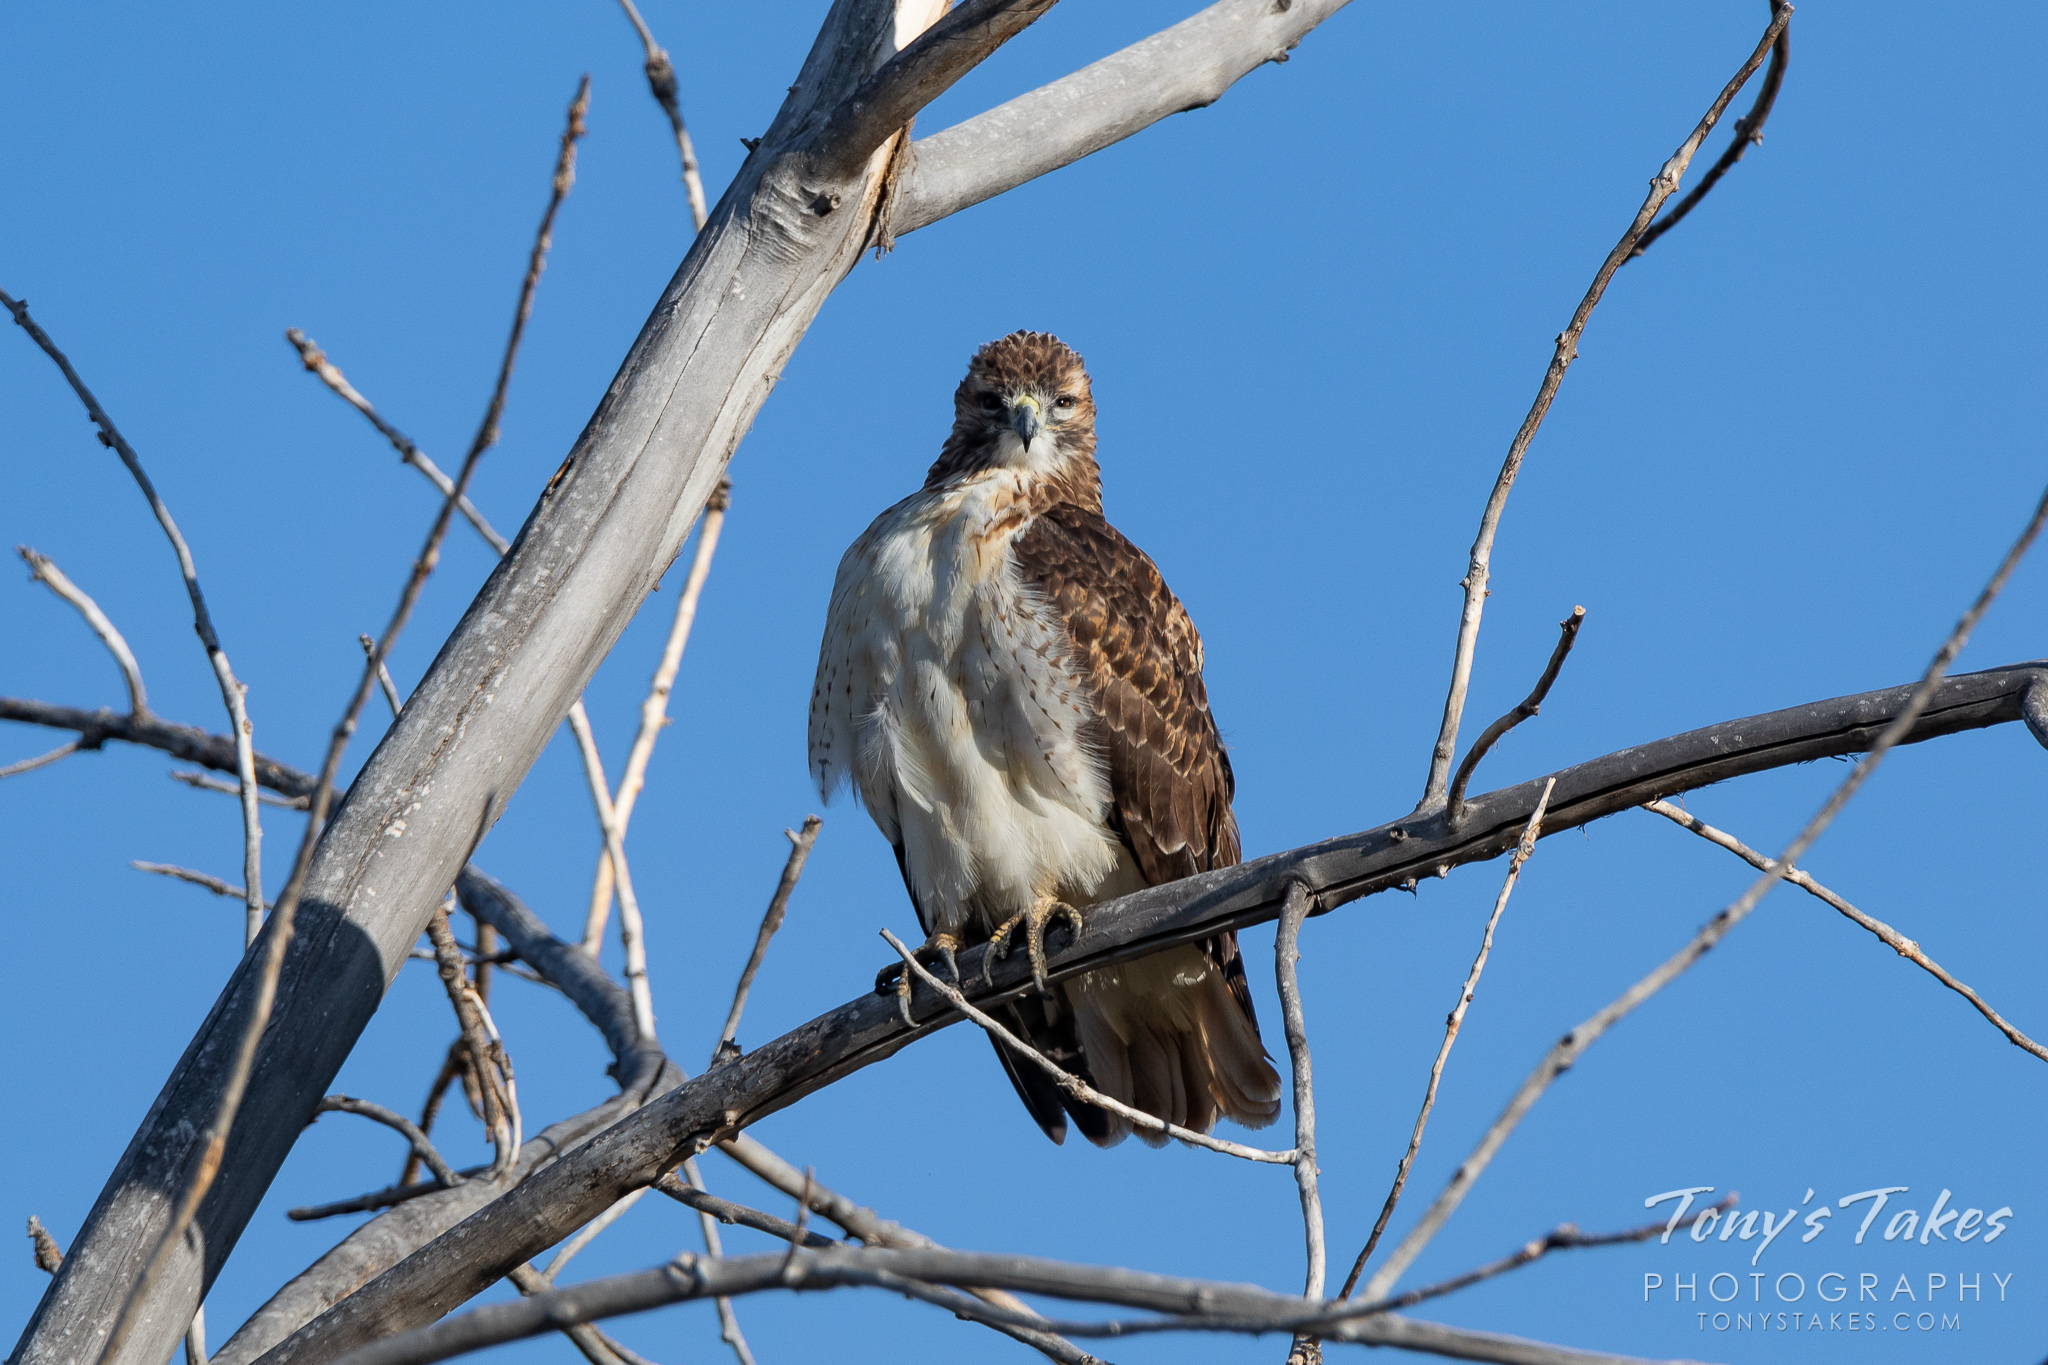 A red-tailed hawk looks to be a bit tired. (© Tony's Takes)